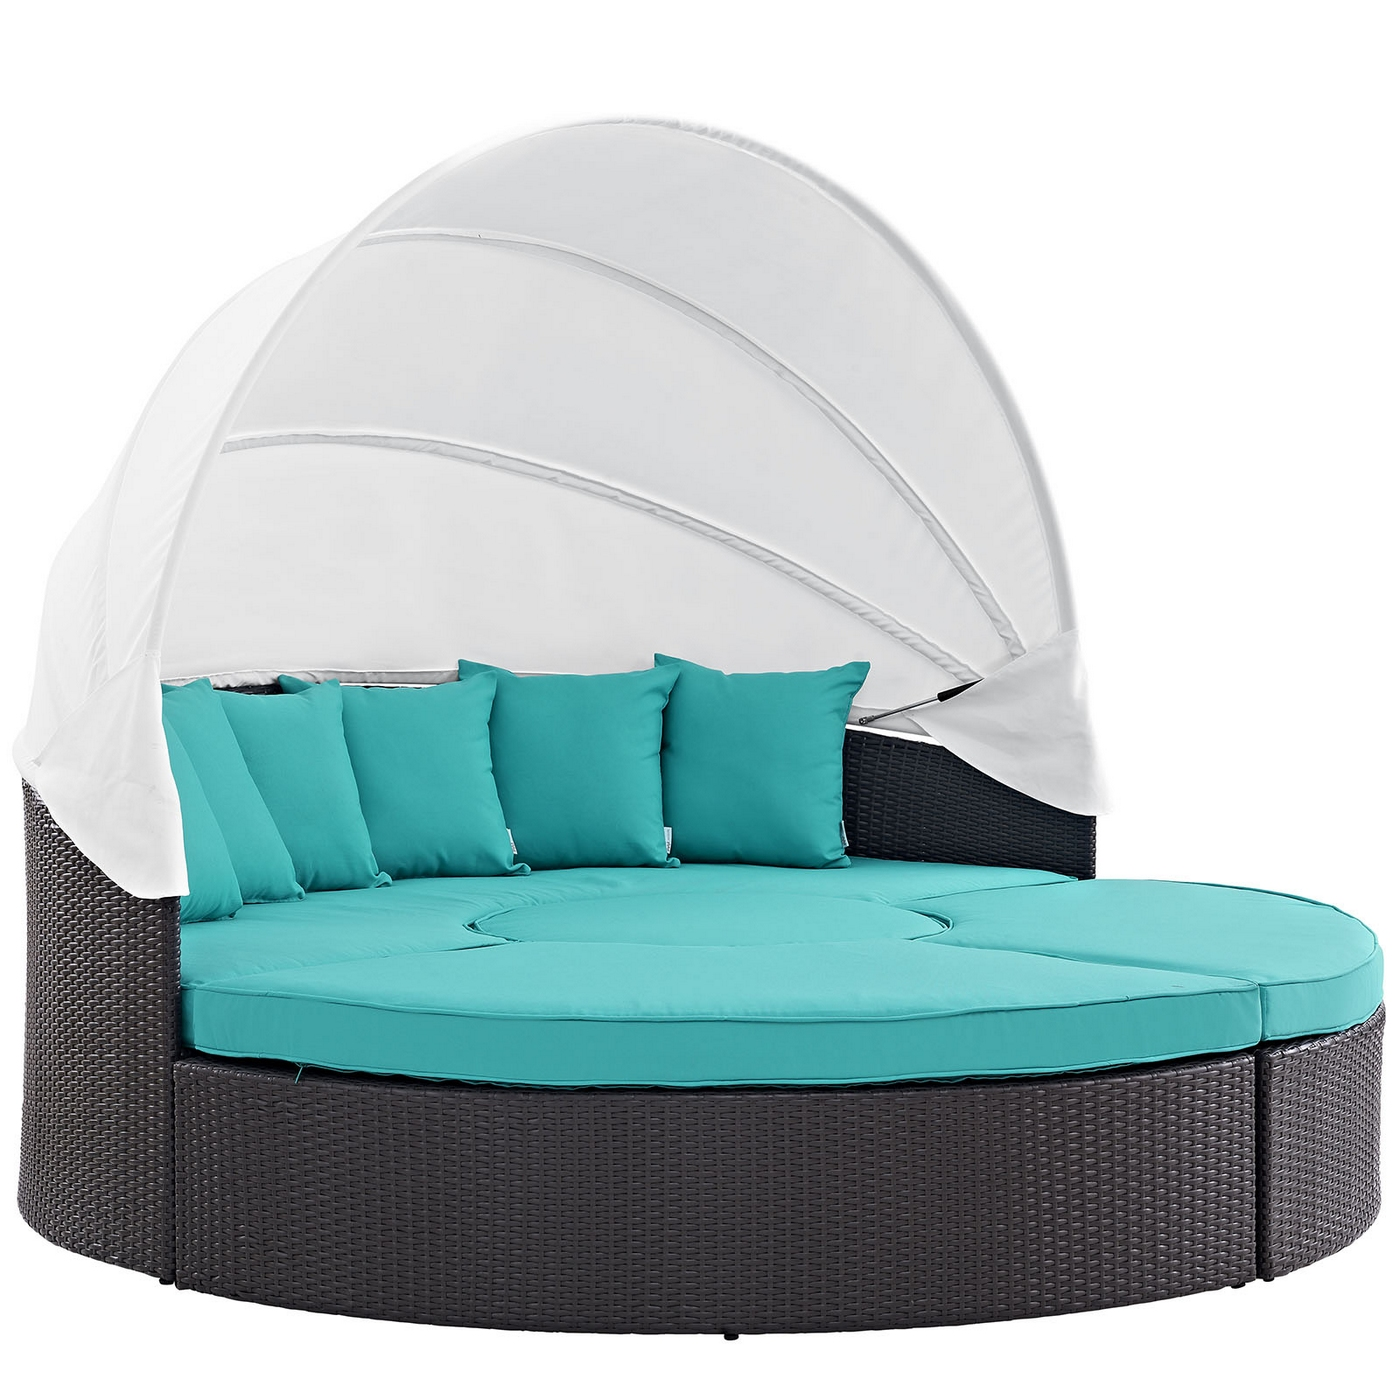 round futon chair cushion christmas covers bed bath and beyond convene modular outdoor patio canopy daybed with